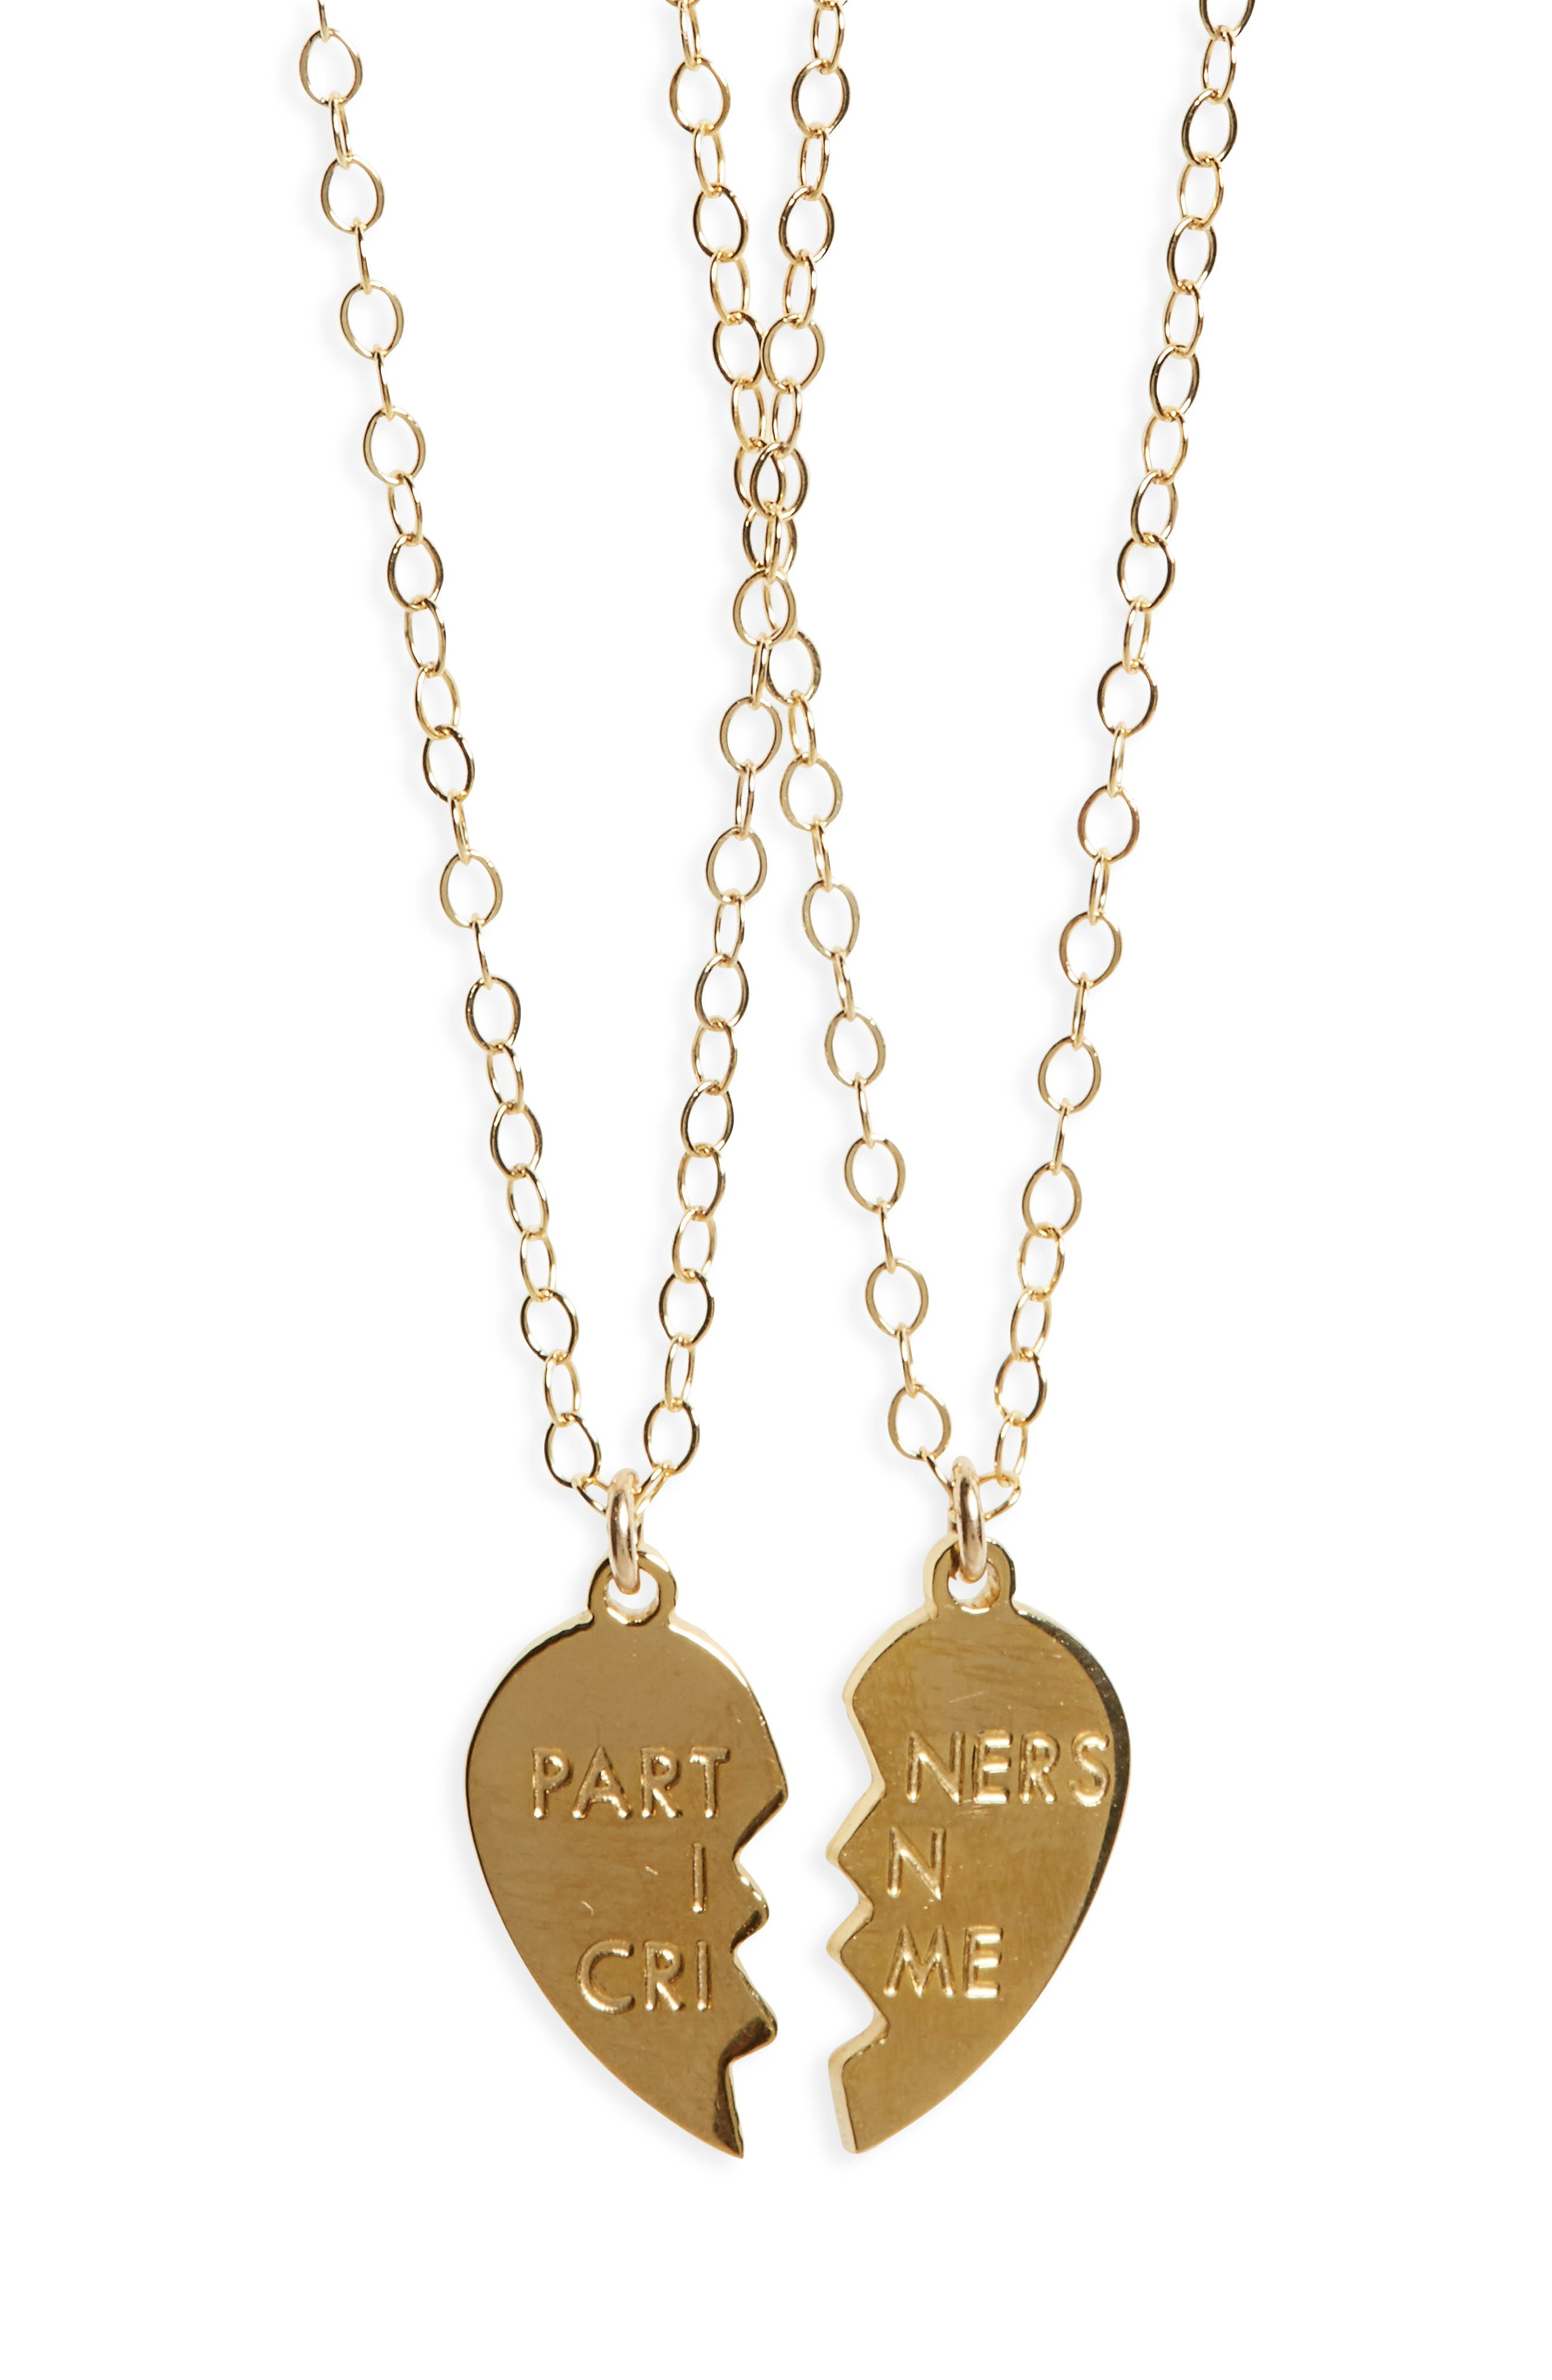 Partners In Crime Necklace Set,                         Main,                         color, 710